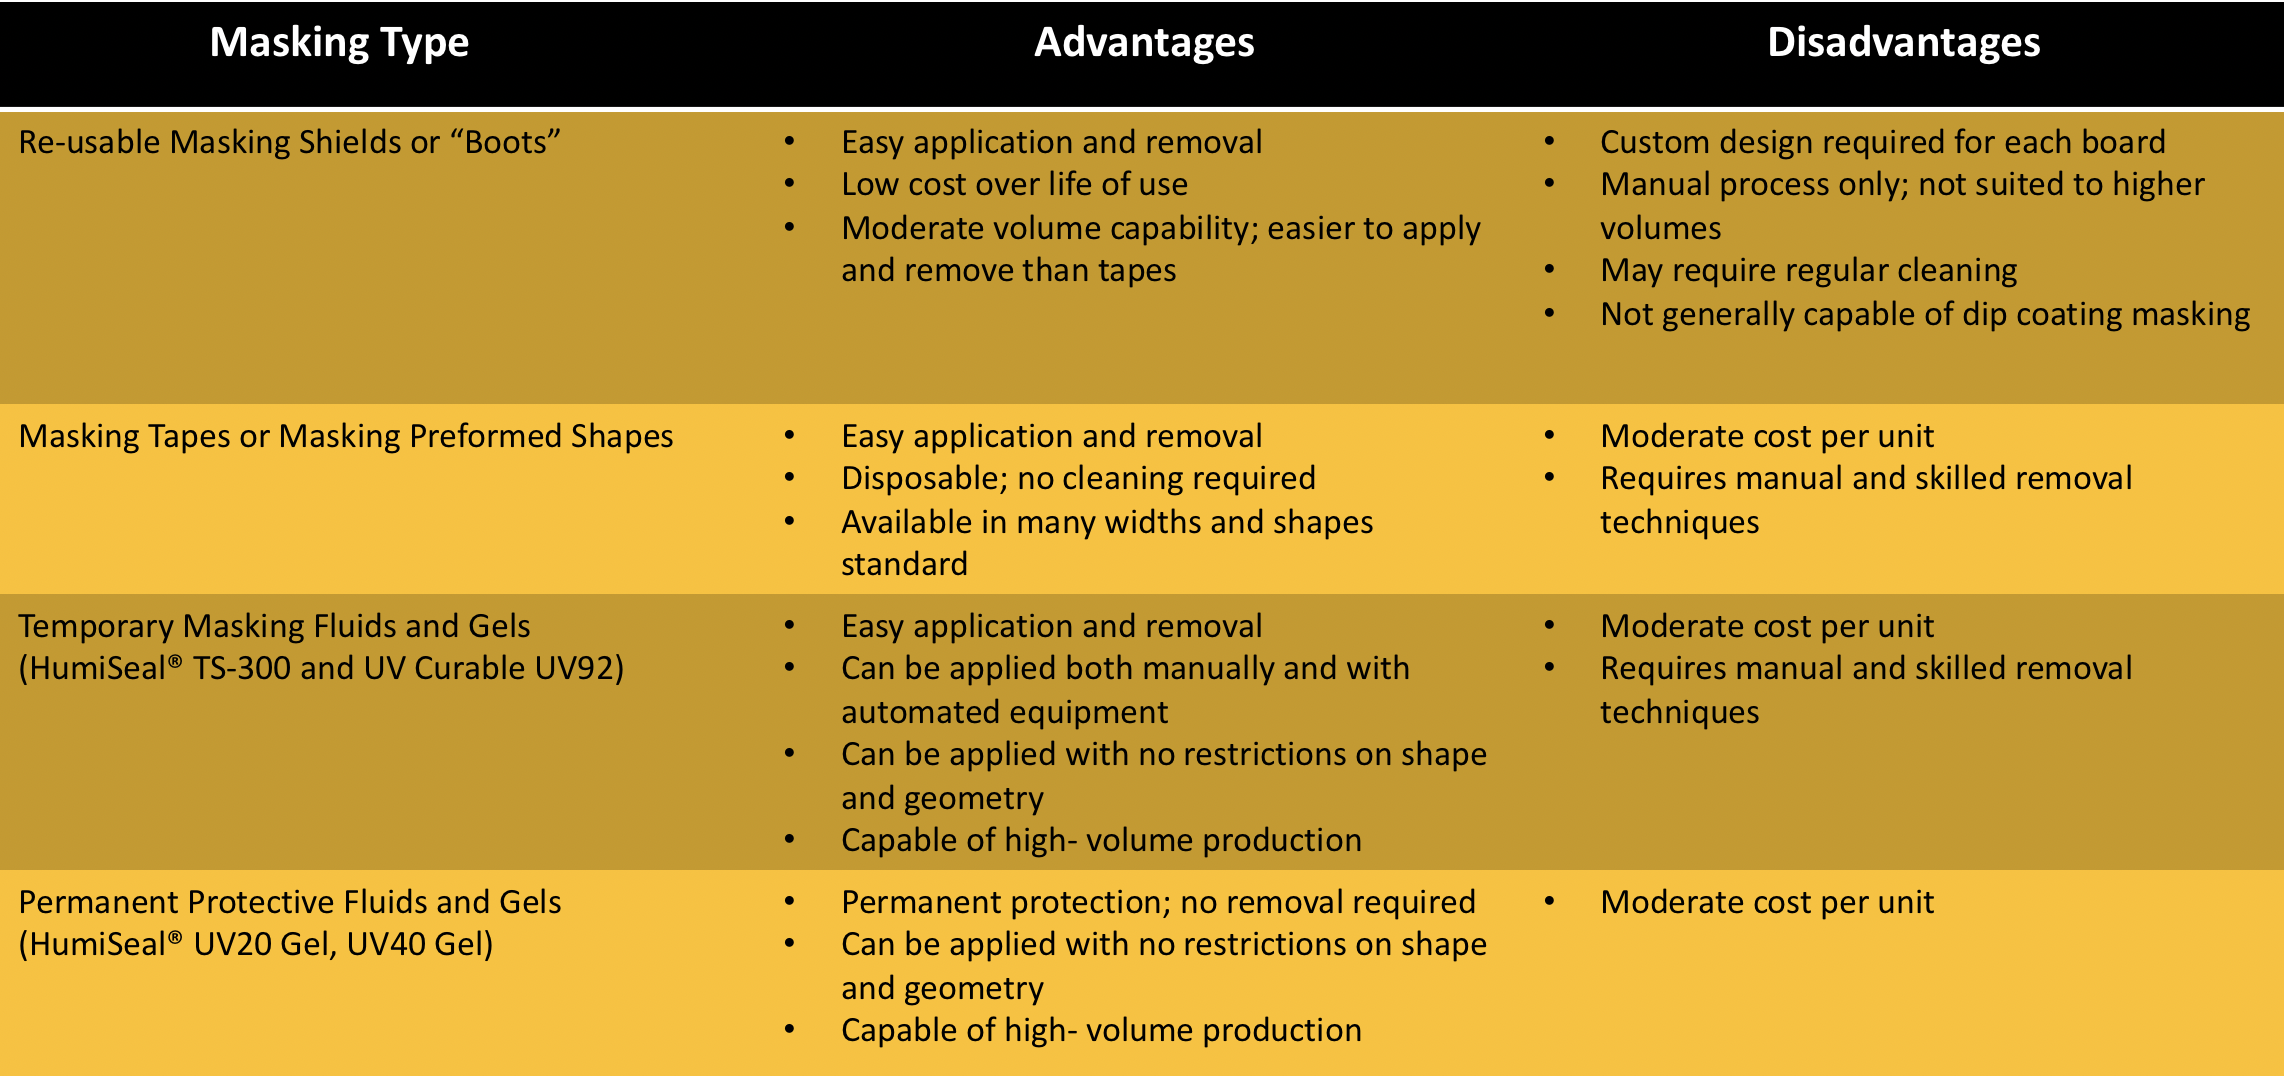 Pros and cons of conformal coating masking types